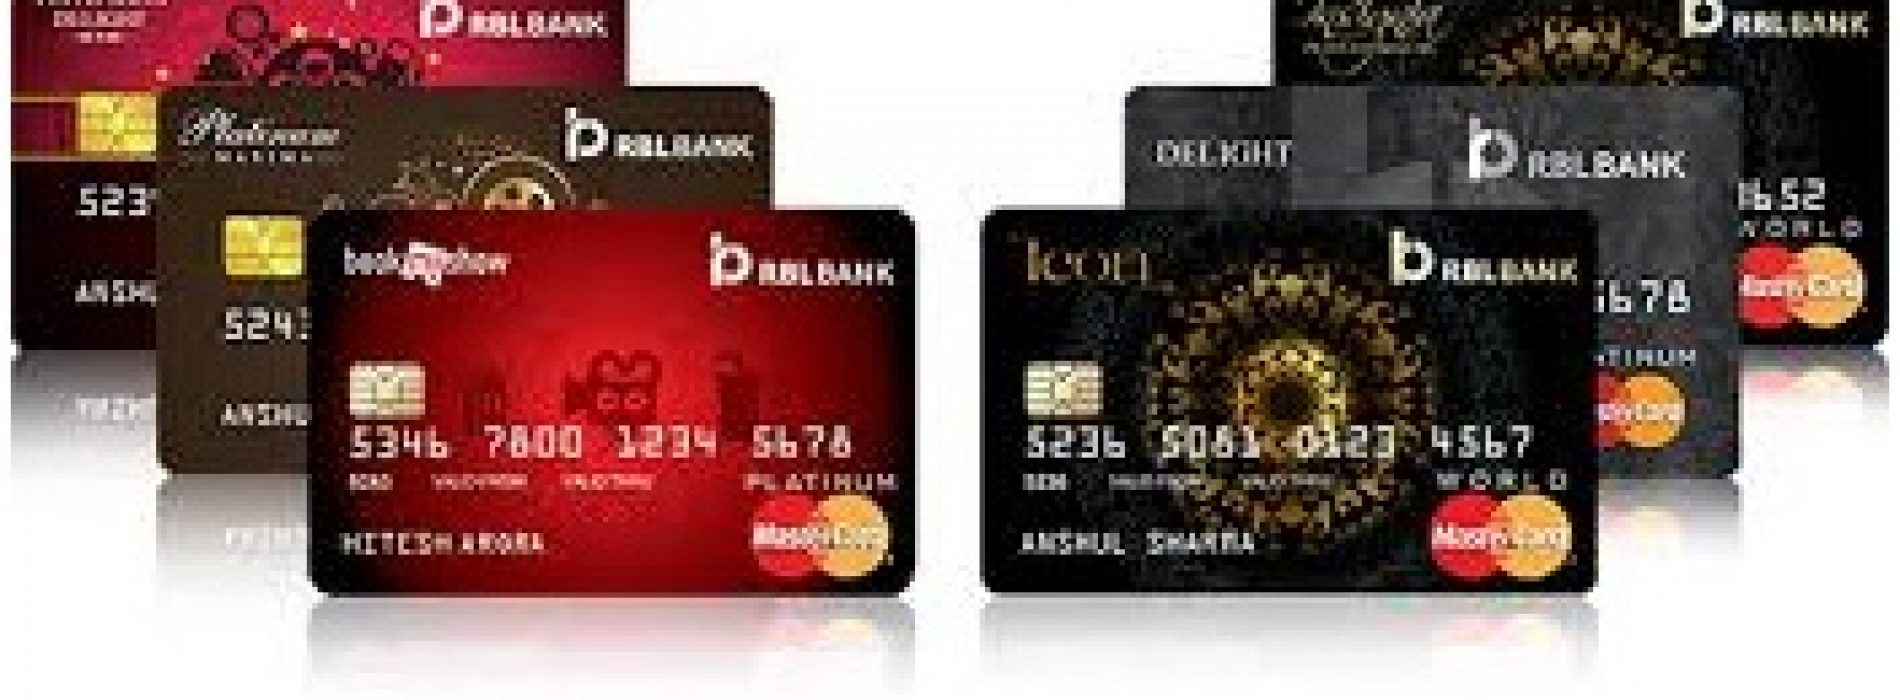 Get the information about RBL Credit Card Status